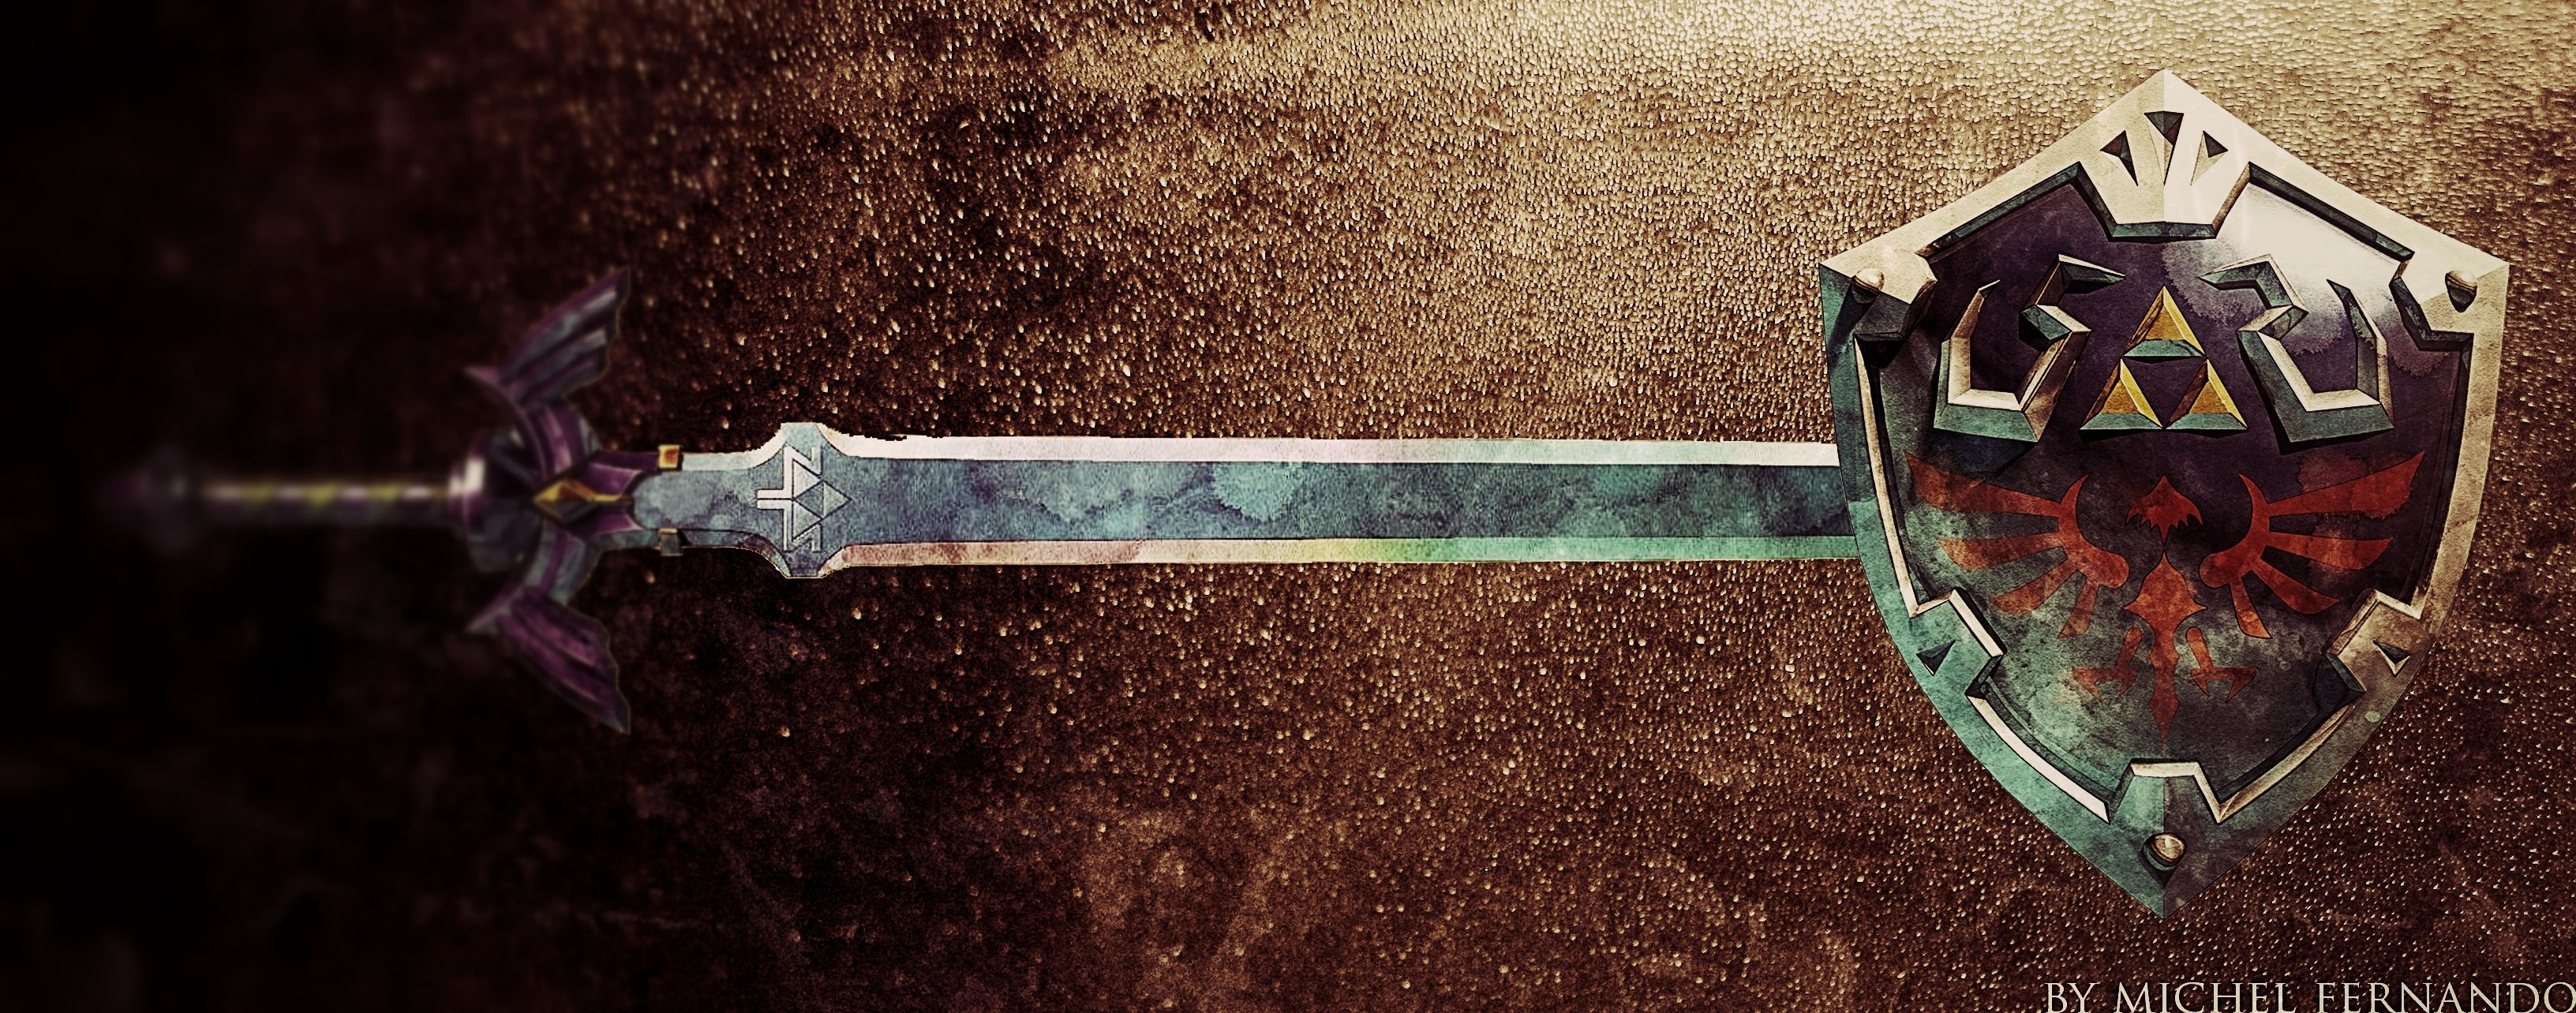 hylian shield and master sword (Banner) by MichelRT on DeviantArt